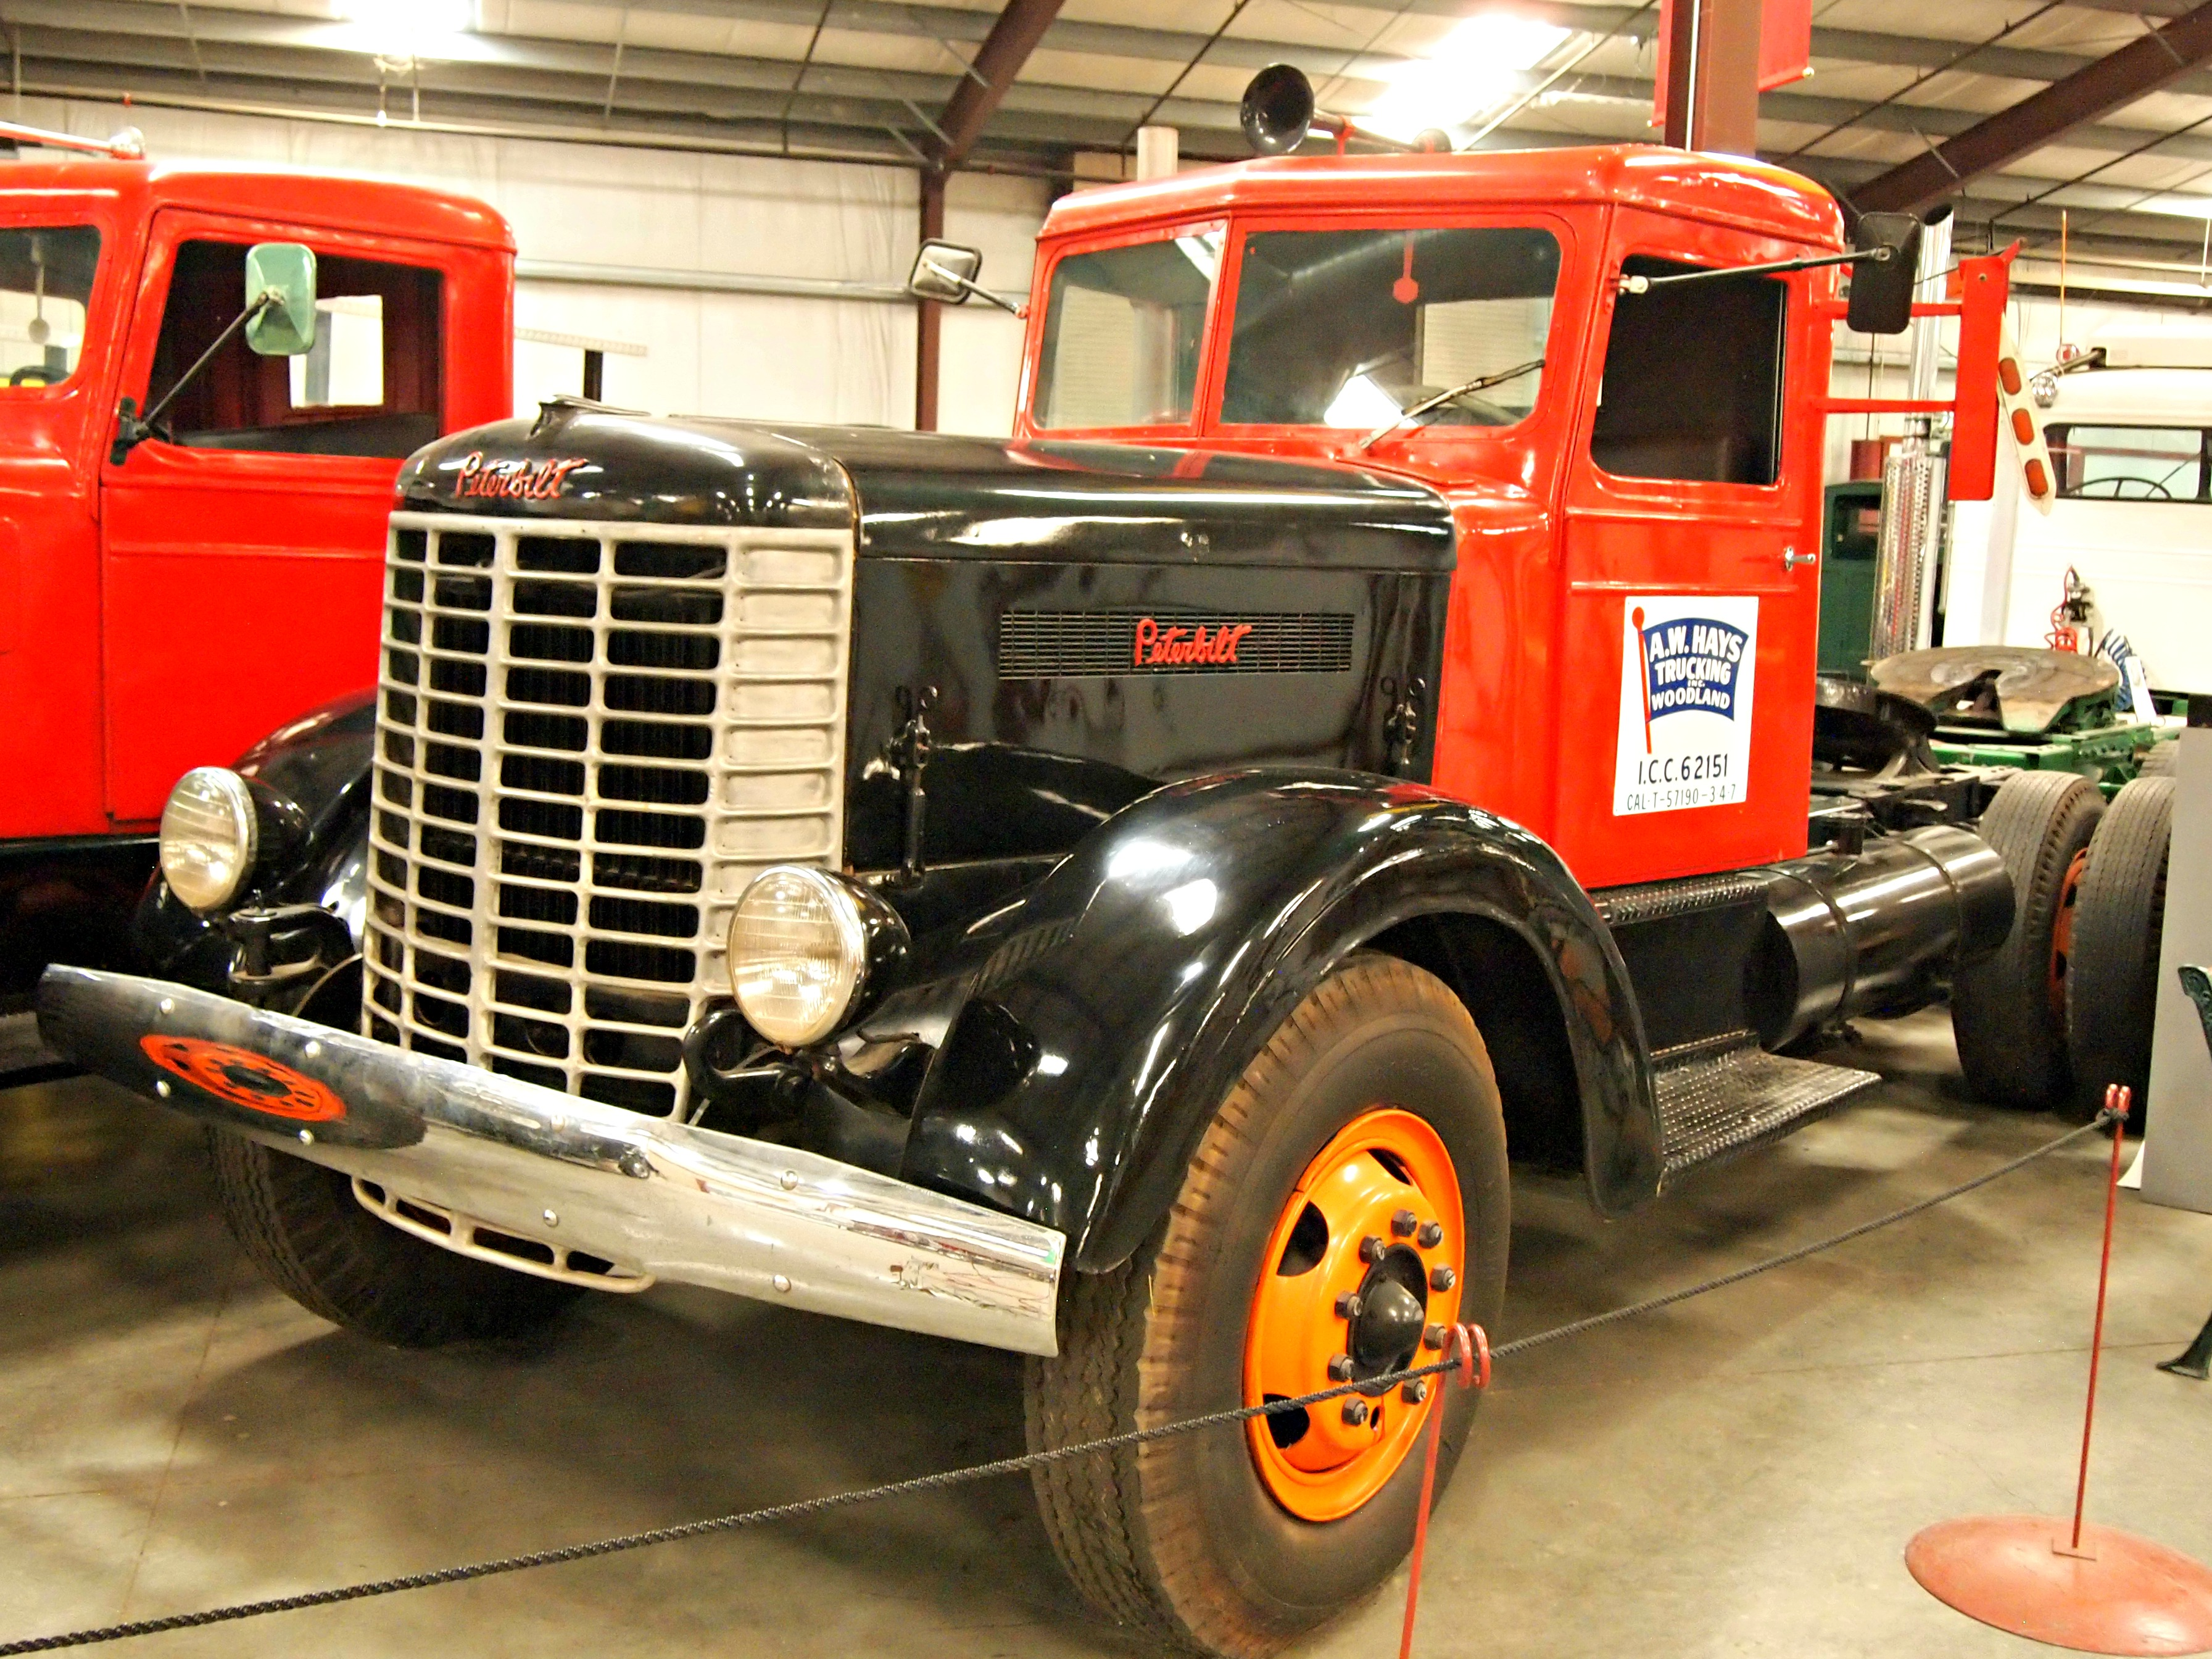 1939 Peterbilt 260GD 5 Ton Tractor 1 | Flickr - Photo Sharing!